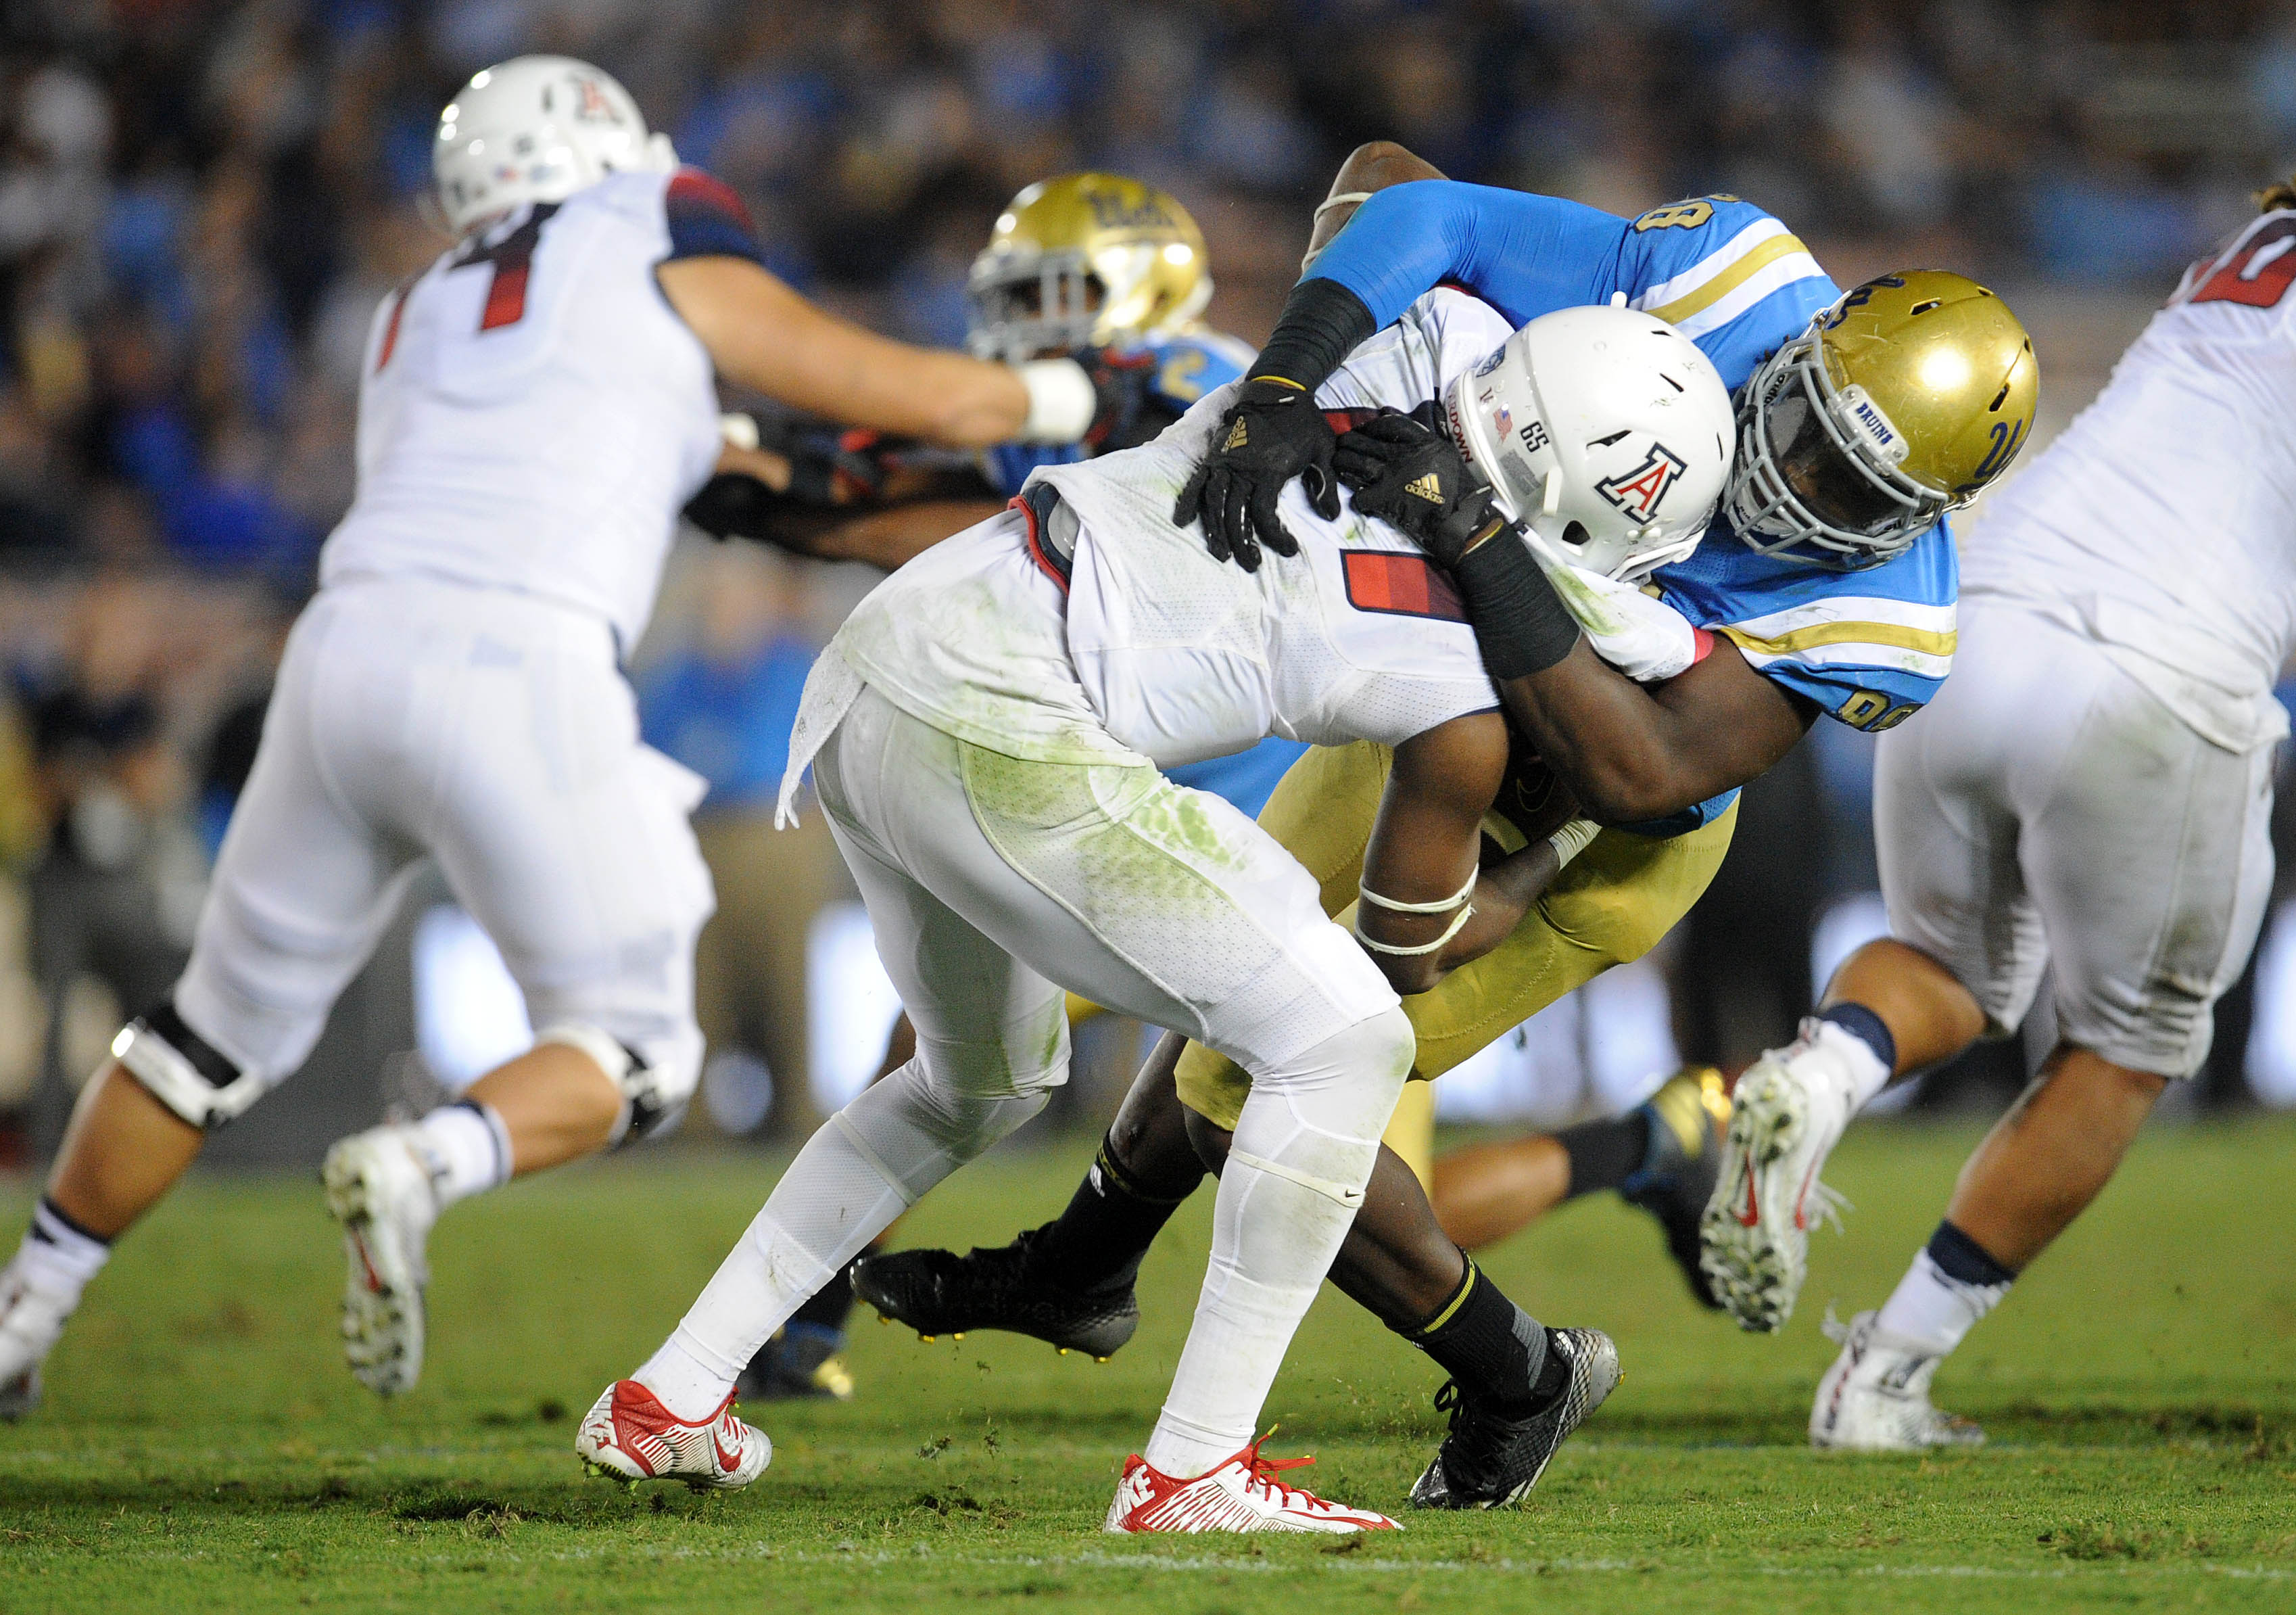 October 1, 2016; Pasadena, CA, USA; UCLA Bruins defensive lineman Takkarist McKinley (98) brings down Arizona Wildcats quarterback Khalil Tate (14) during the second half at Rose Bowl. Mandatory Credit: Gary A. Vasquez-USA TODAY Sports